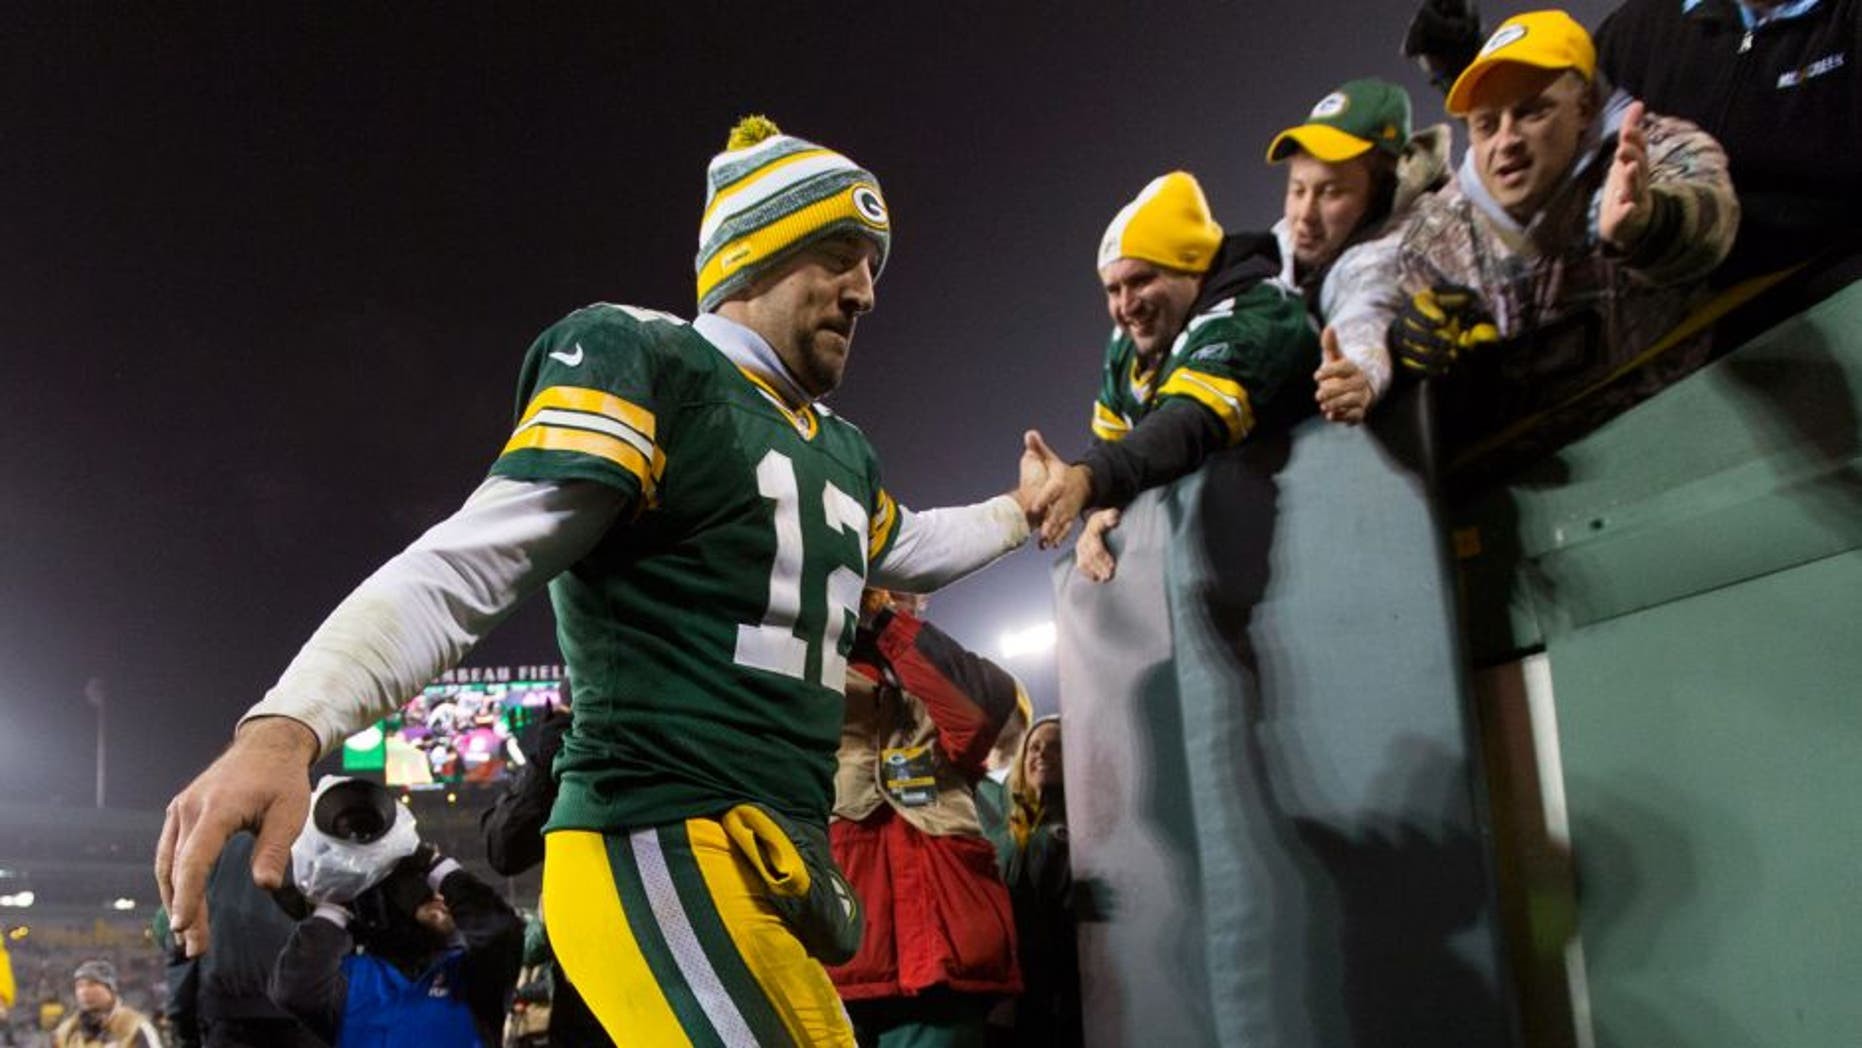 Dec 8, 2014; Green Bay, WI, USA; Green Bay Packers quarterback Aaron Rodgers (12) high fives fans following the game against the Atlanta Falcons at Lambeau Field. Green Bay won 43-37. Mandatory Credit: Jeff Hanisch-USA TODAY Sports